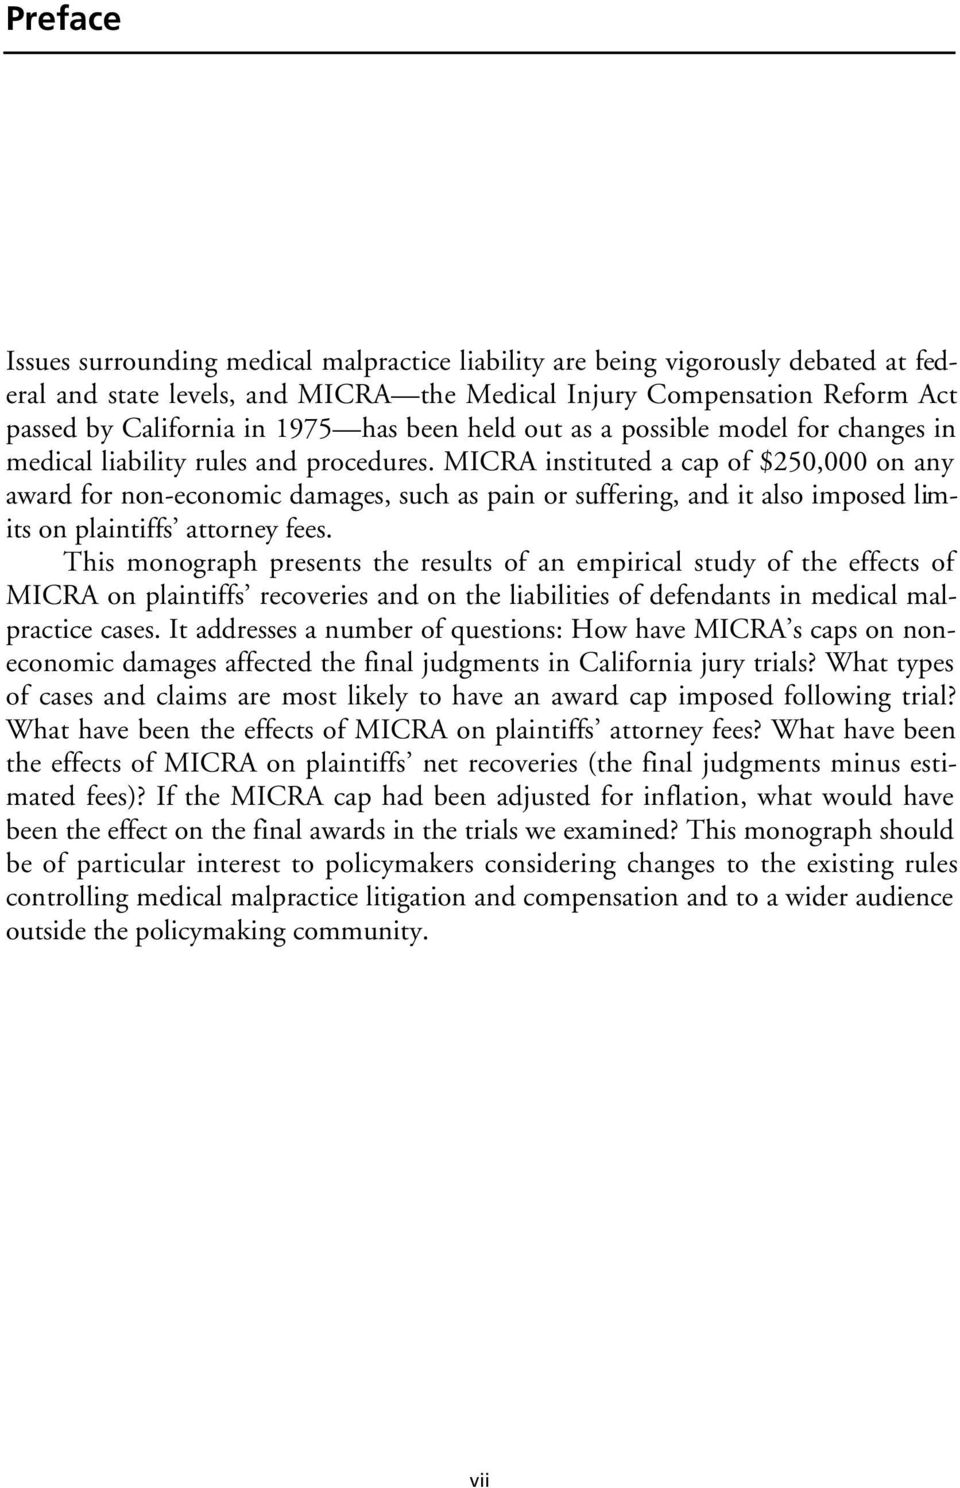 MICRA instituted a cap of $250,000 on any award for non-economic damages, such as pain or suffering, and it also imposed limits on plaintiffs attorney fees.